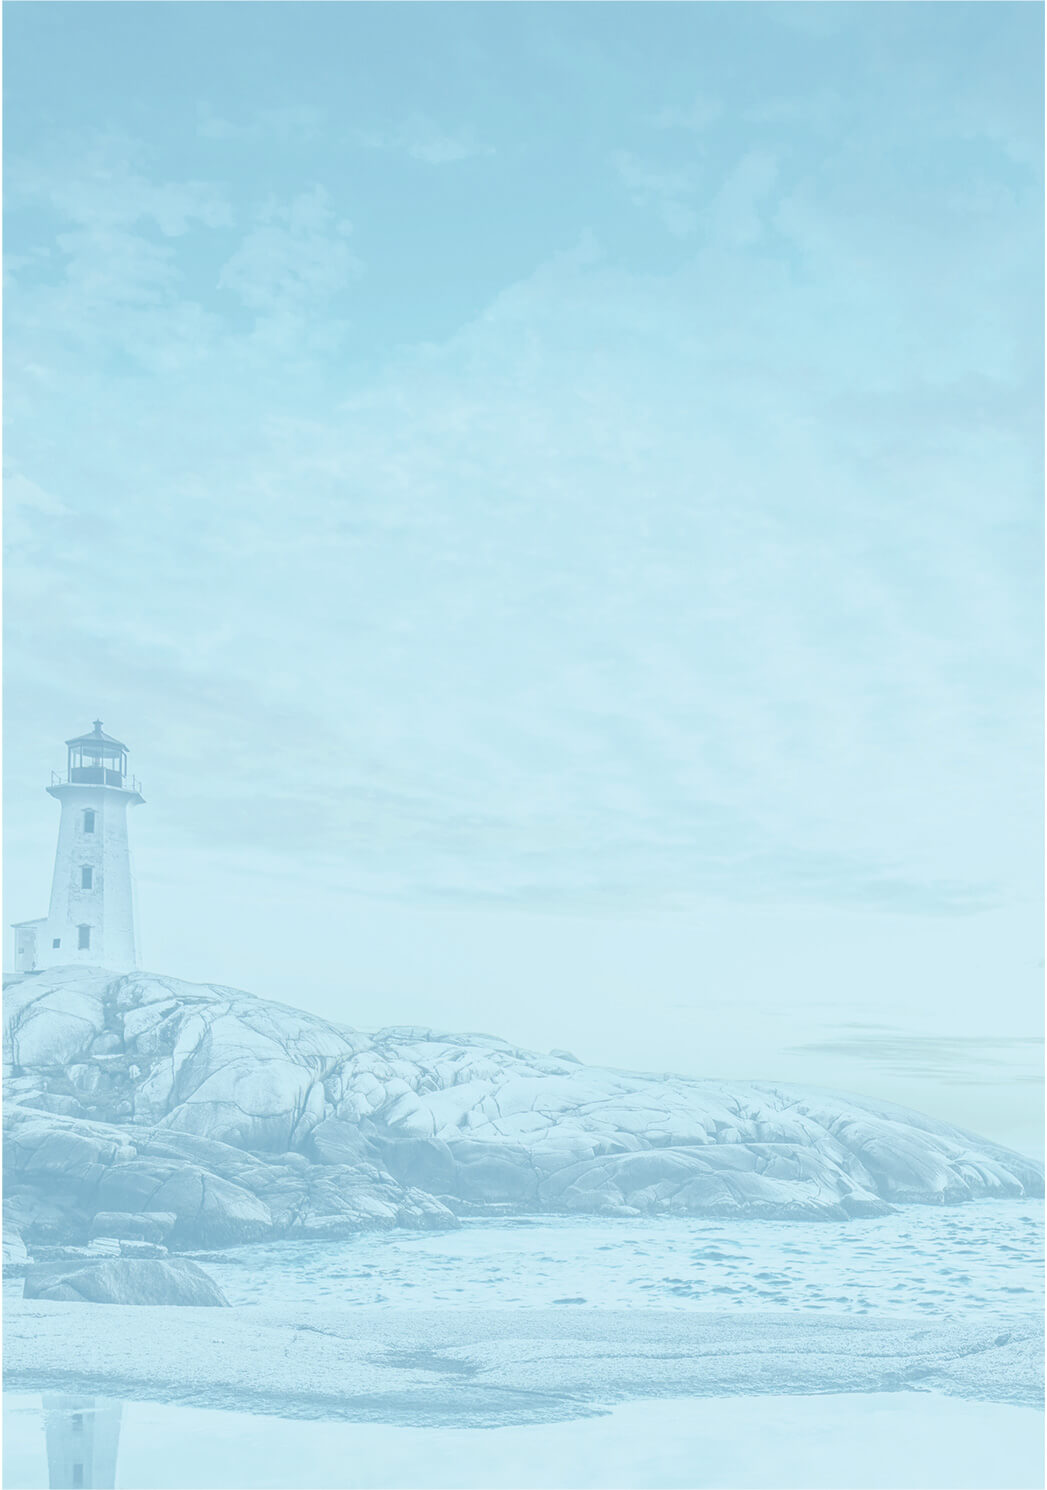 Calming Lighthouse and Sea Landscape with Blue Overlay.